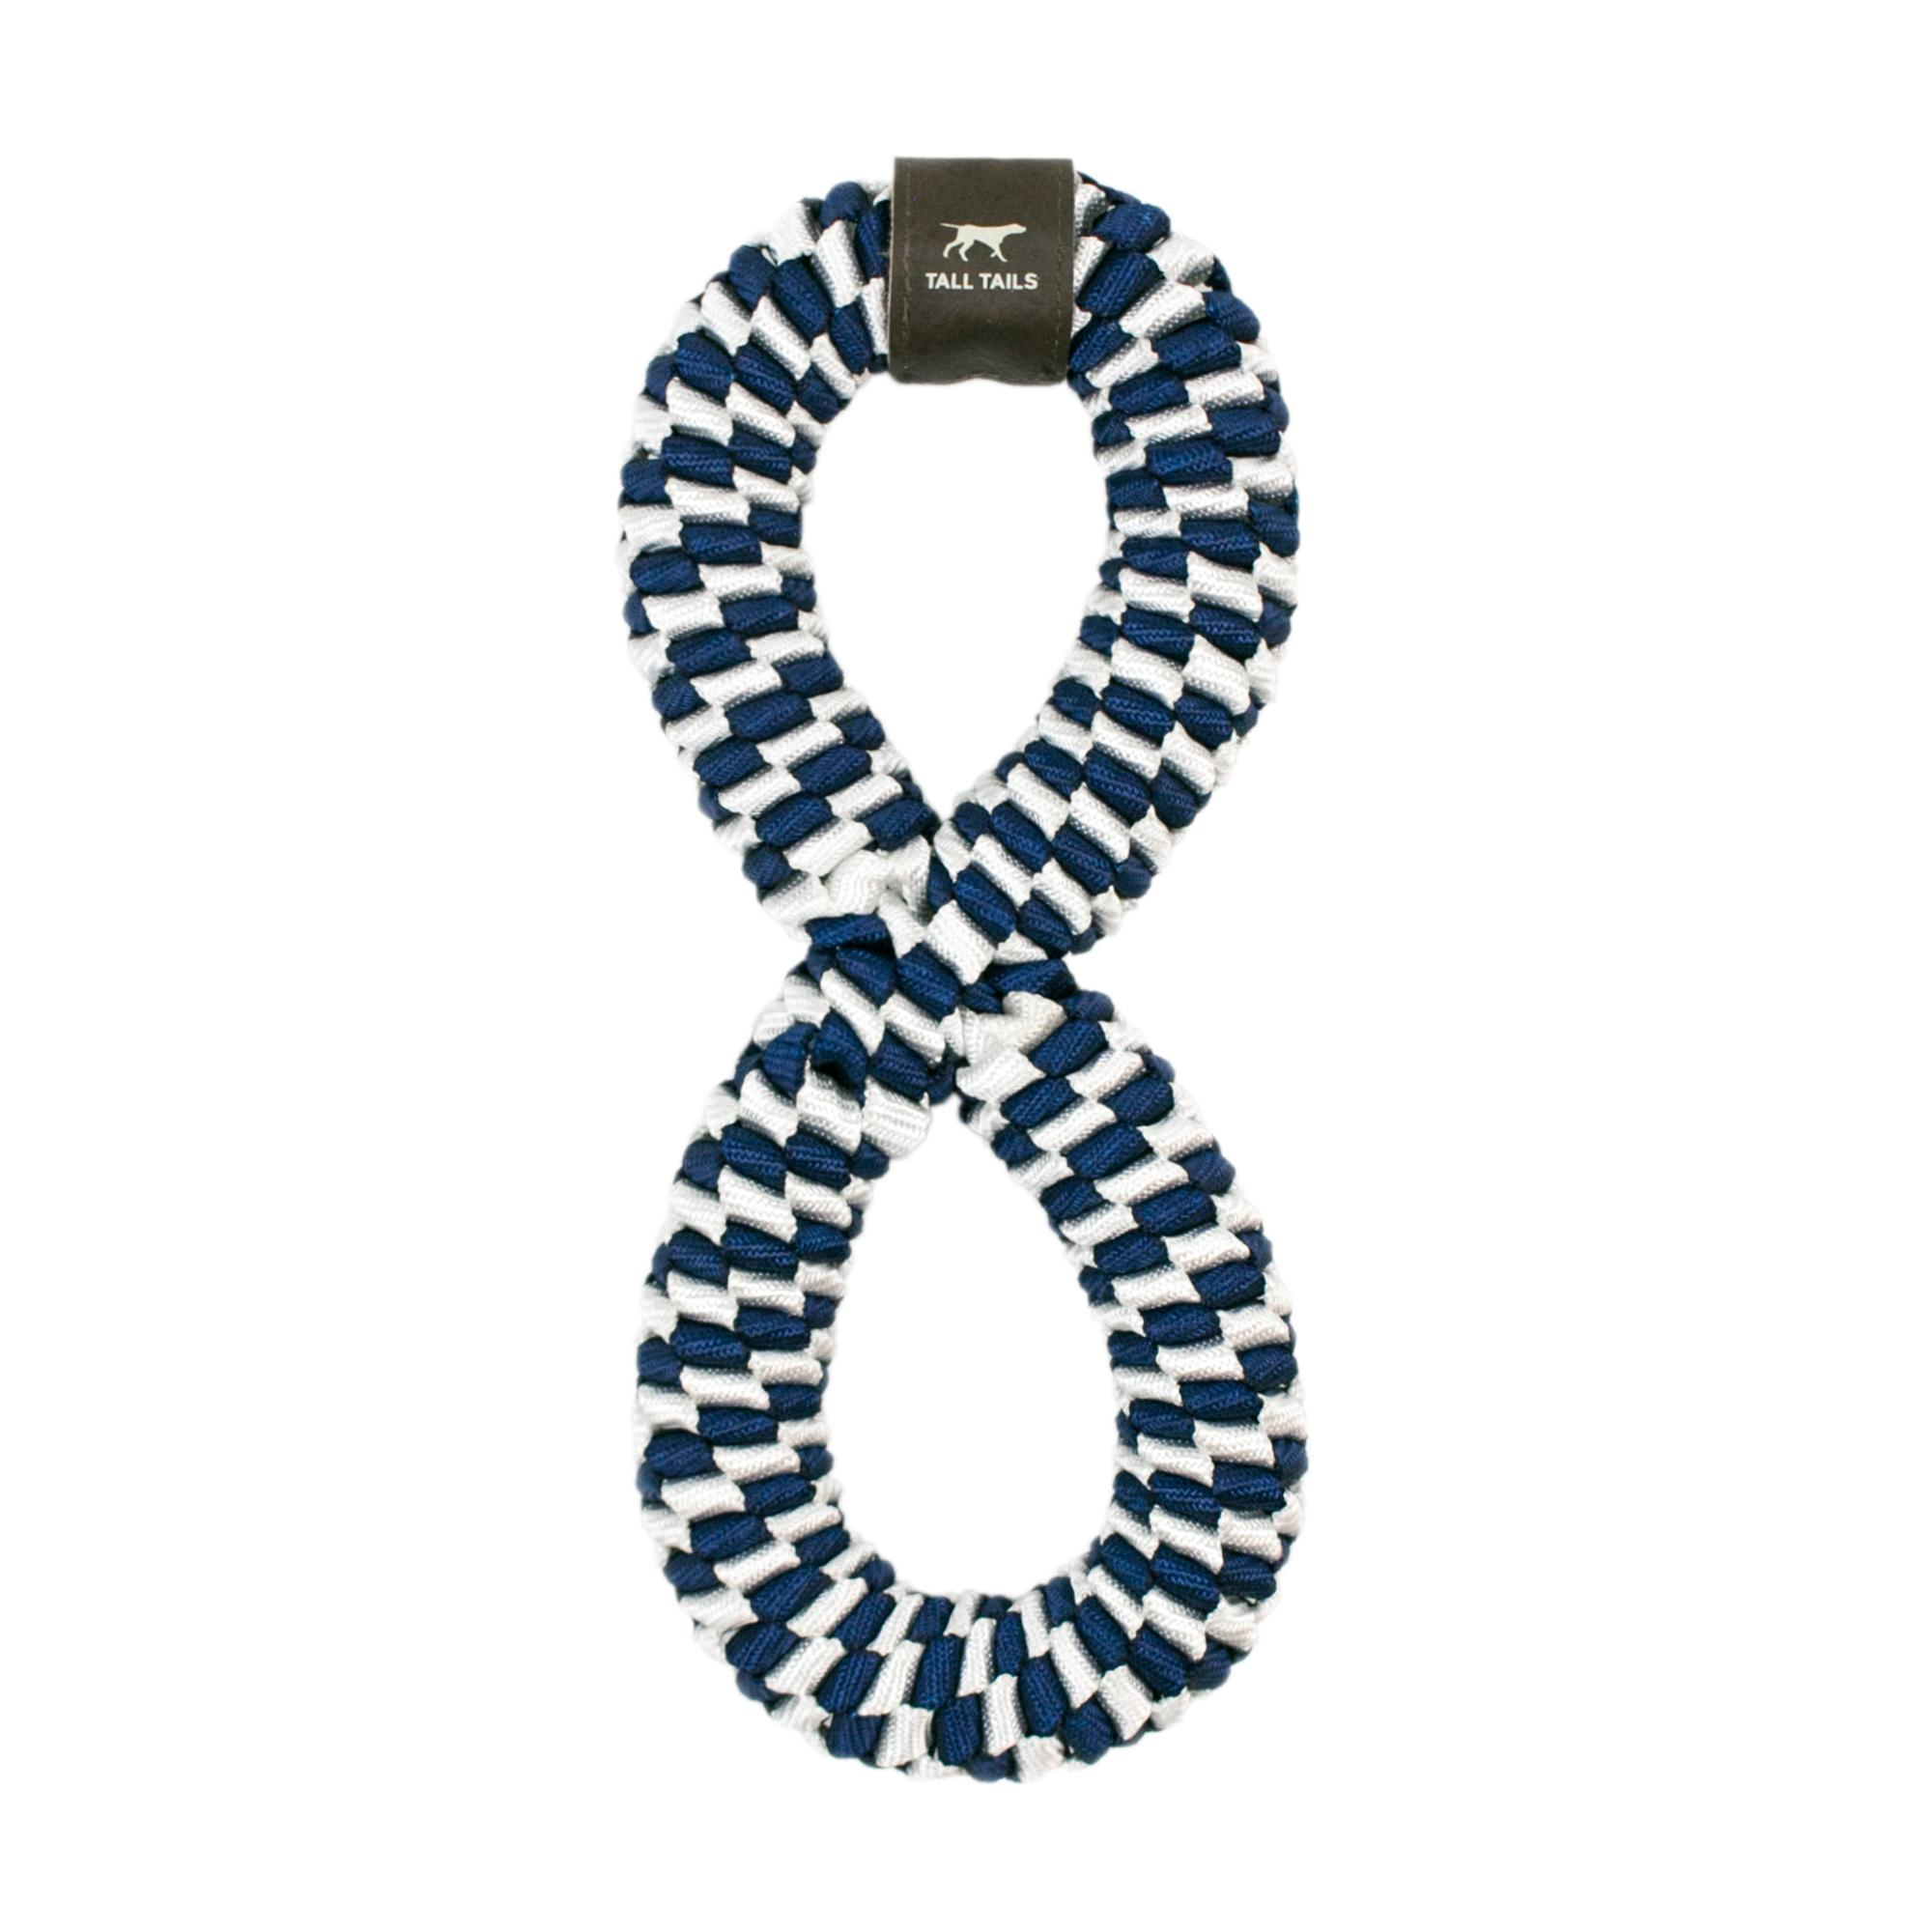 Tall Tails Braided Infinity Tug Dog Toy, Navy, 11-in.